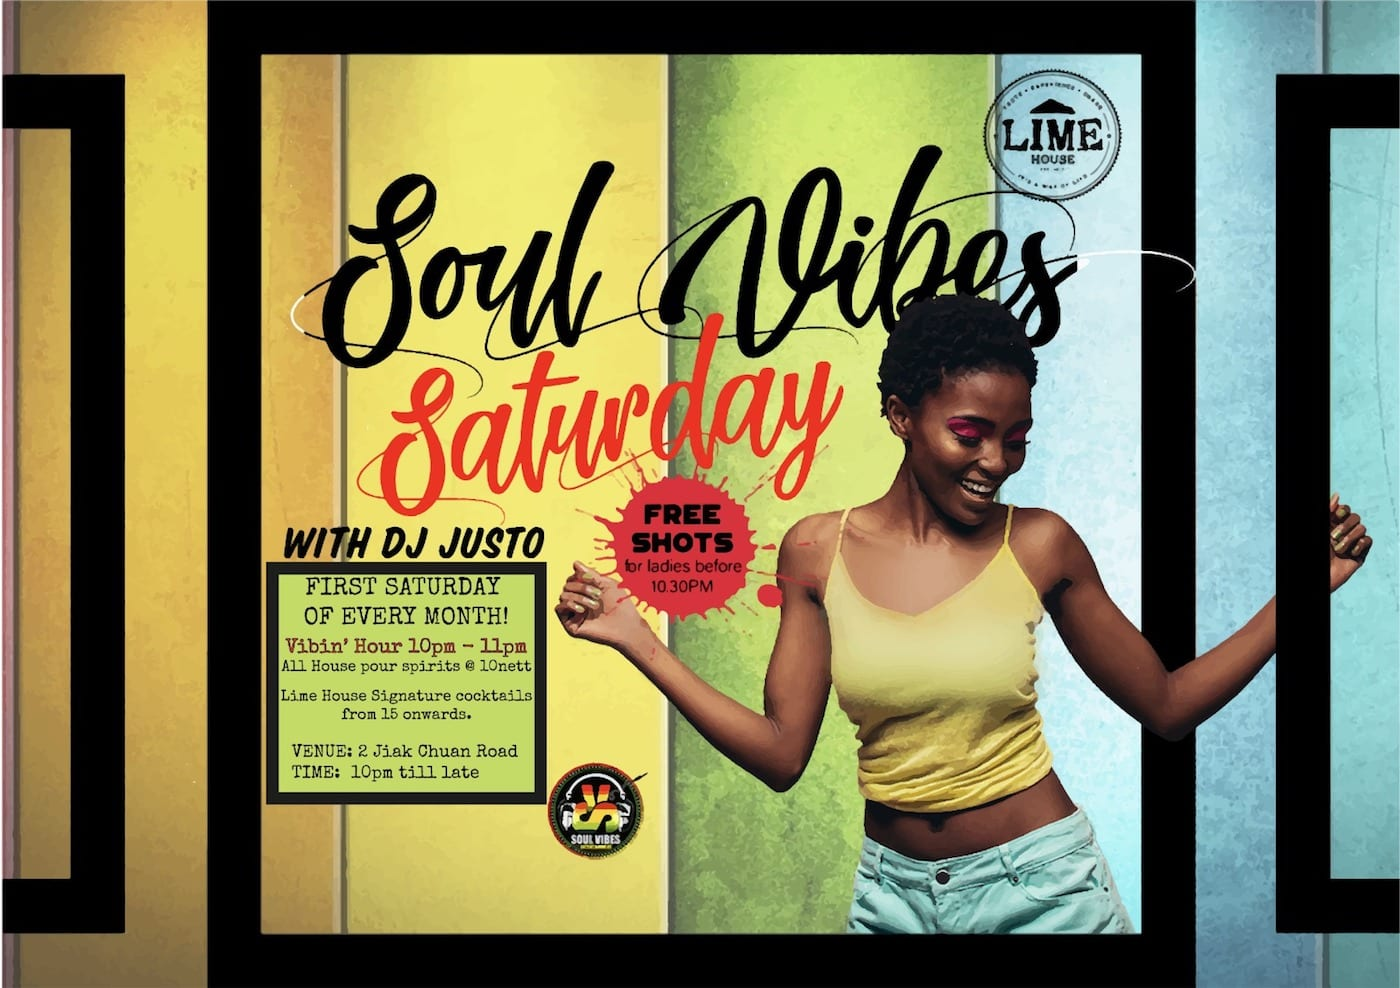 Experience the best of Caribbean culture at Lime House's Soul Vibes Saturday